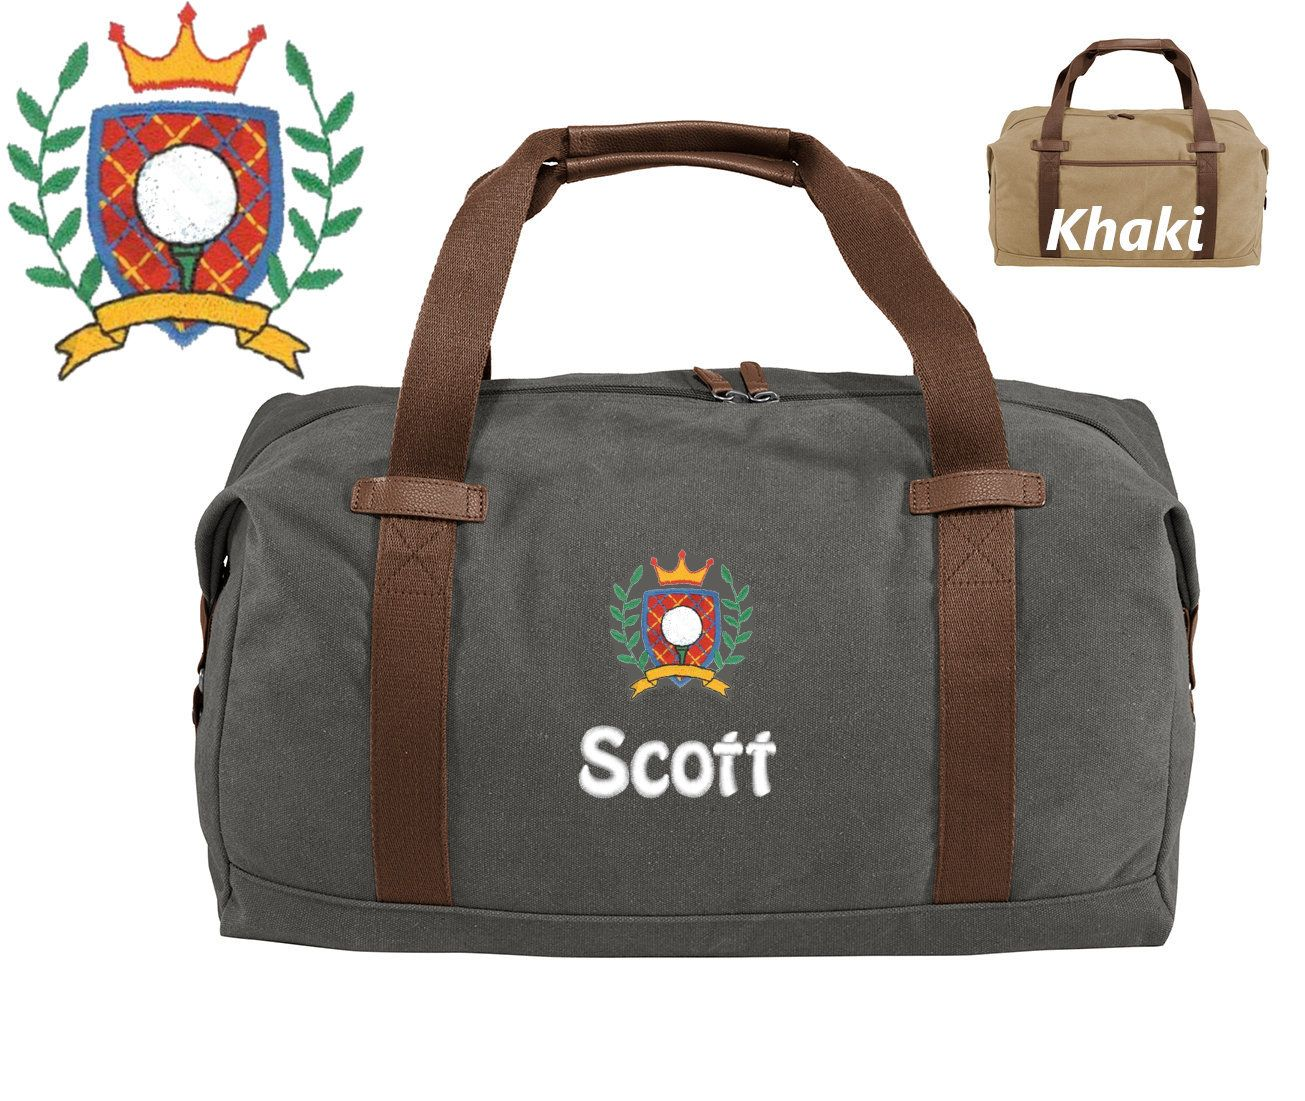 Personalized golf duffle bag embroidered golf crest